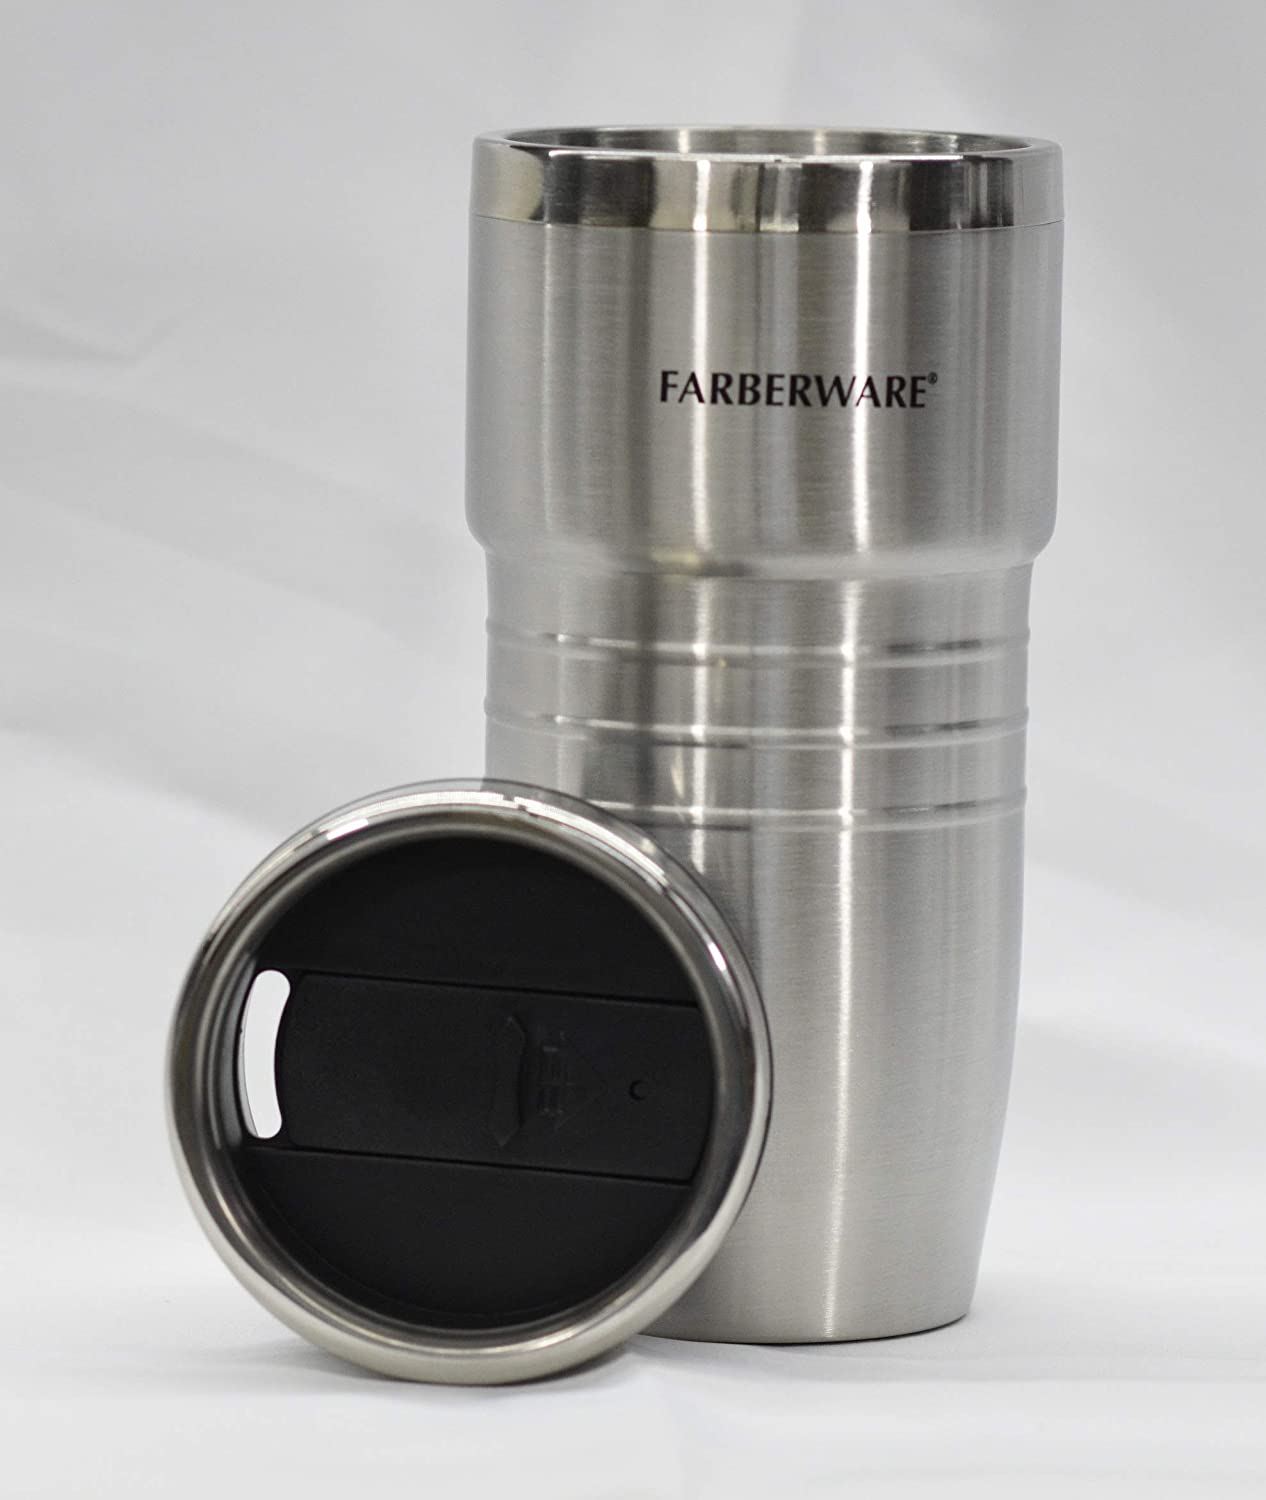 Farberware 16 oz Stainless Steel Double Wall Tumbler, Vacuum Insulated Travel Coffee Mug with Magslider Lid for Home, Office Outdoors Hydro Flask Cups for Ice Drinks and Hot Beverage (No Handle)